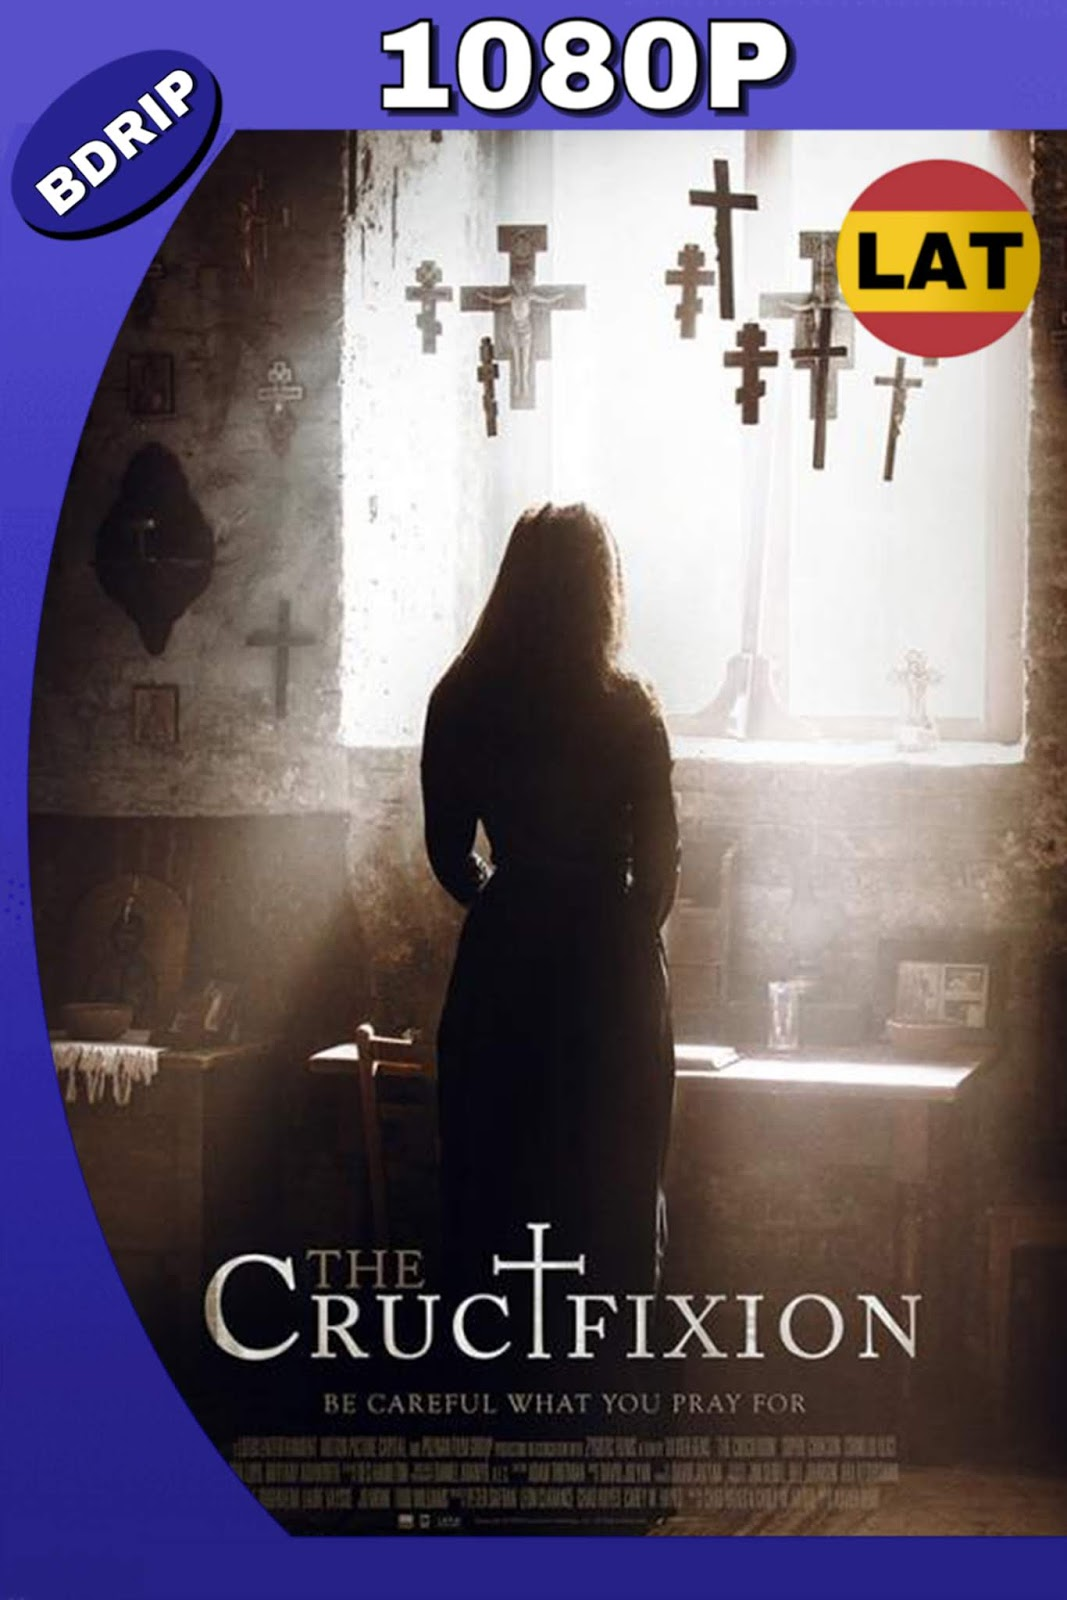 CRUCIFIXION 2017 HD BDRIP 1080P 11GB.mkv